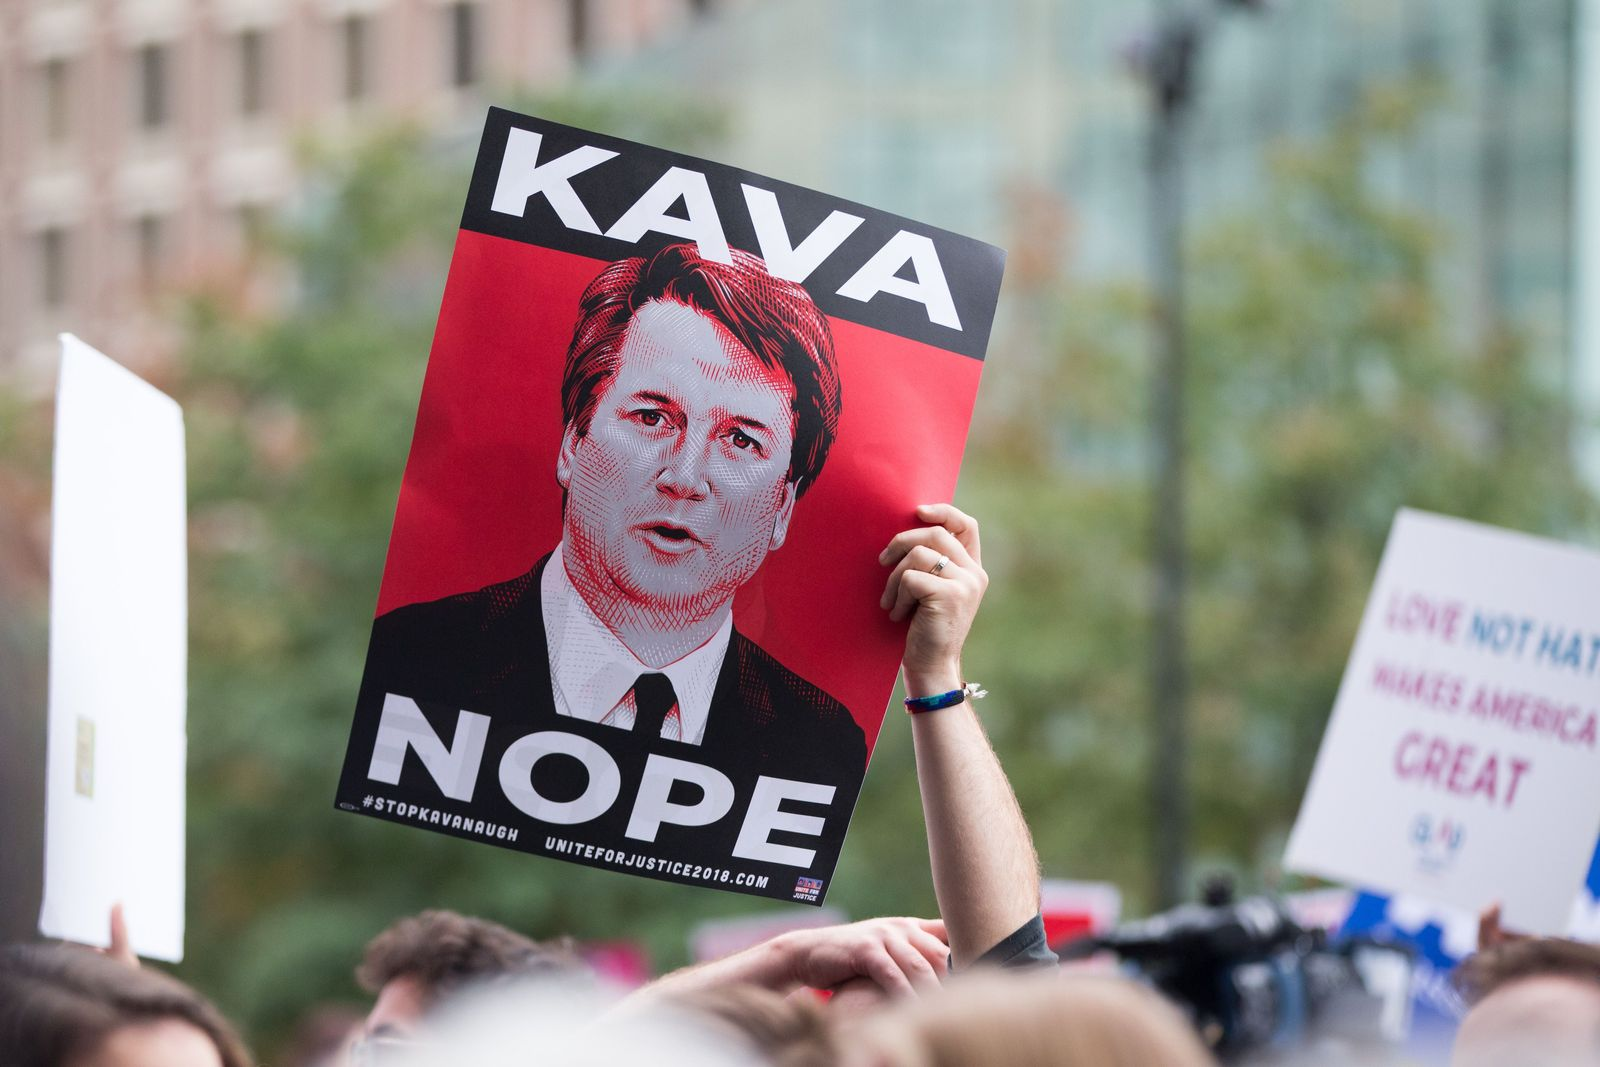 US-BOSTON-MAYOR,-ACTIVISTS-RALLY-TO-ASK-JEFF-FLAKE-TO-REJECT-KAV